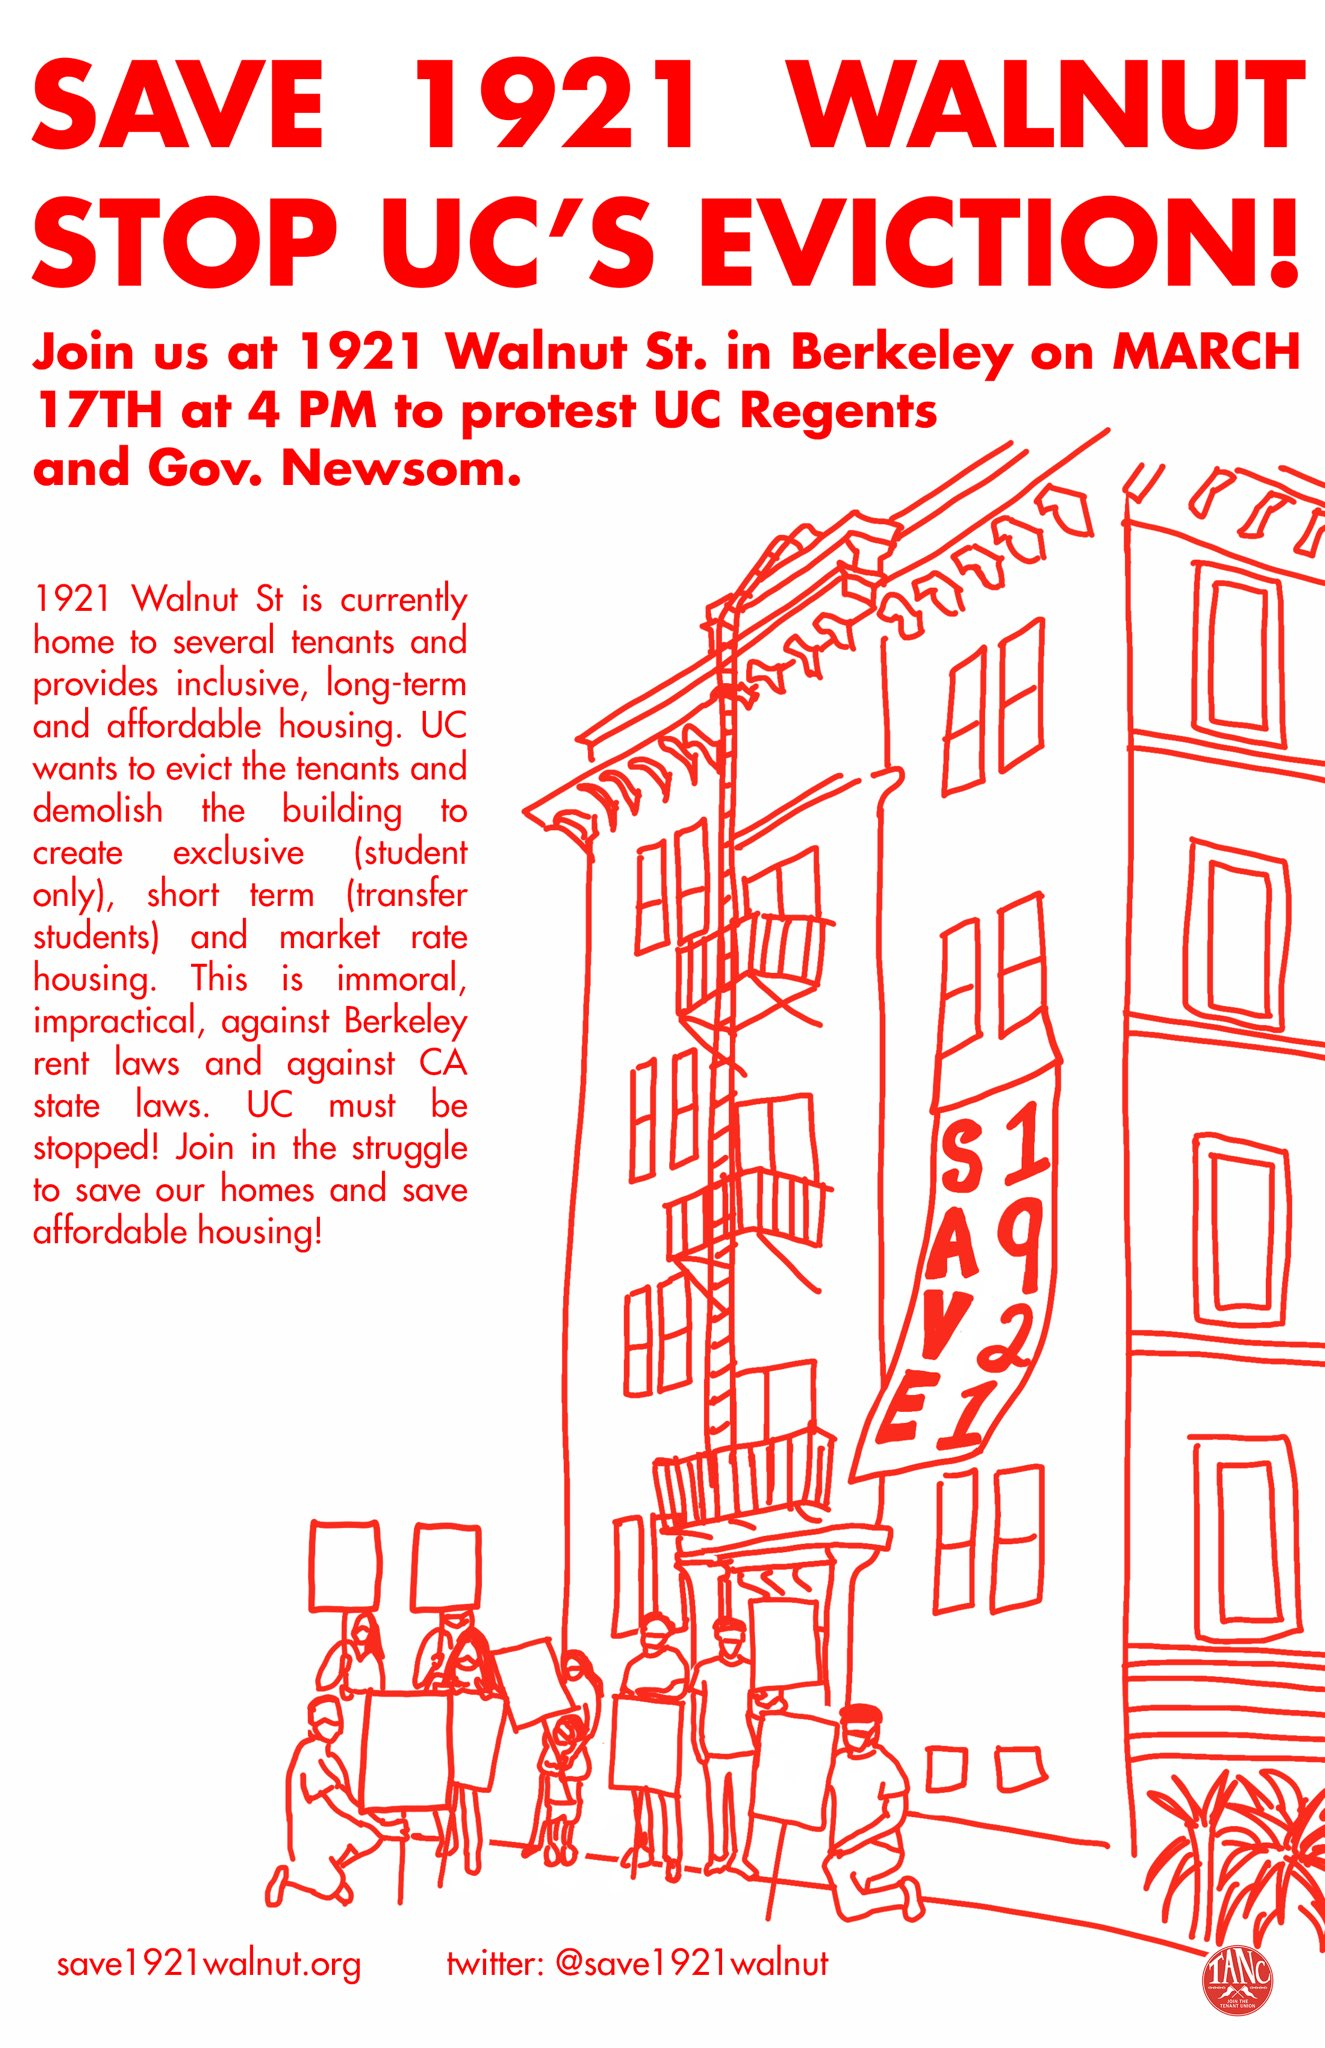 Stop UC's Eviction!